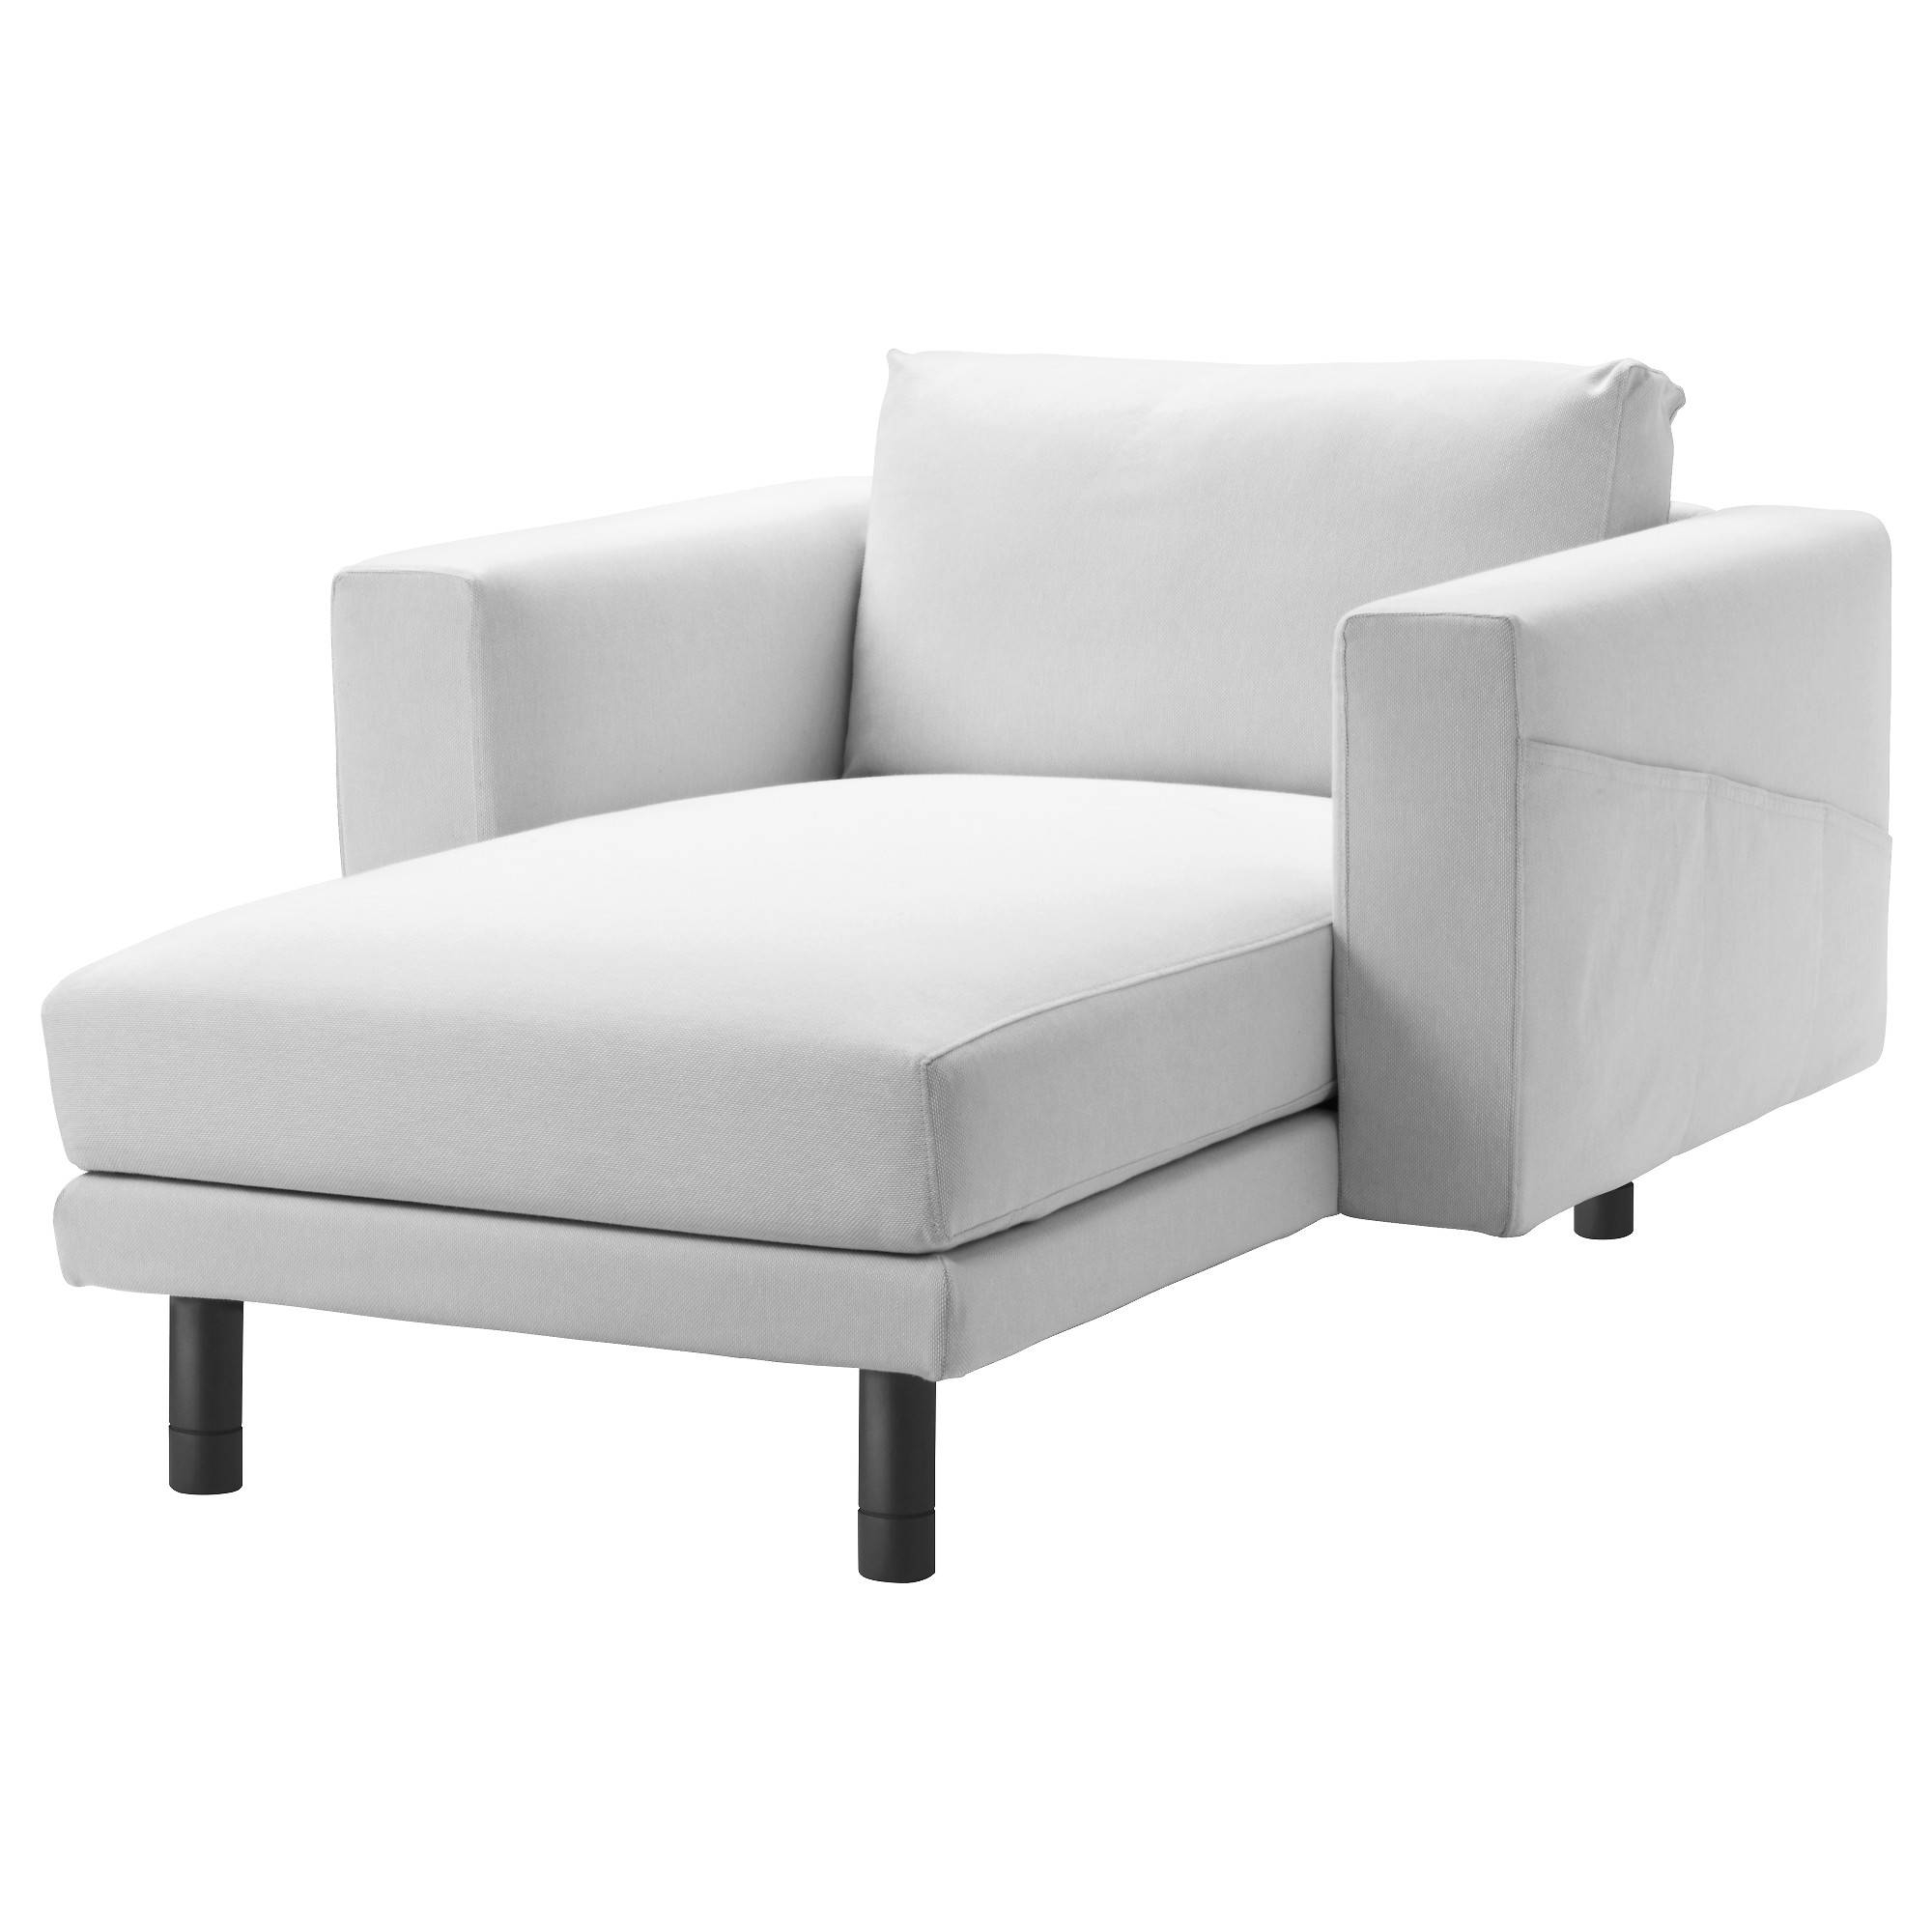 Chaise Lounges | Ikea throughout Ikea Chaise Lounge Sofa (Image 4 of 30)